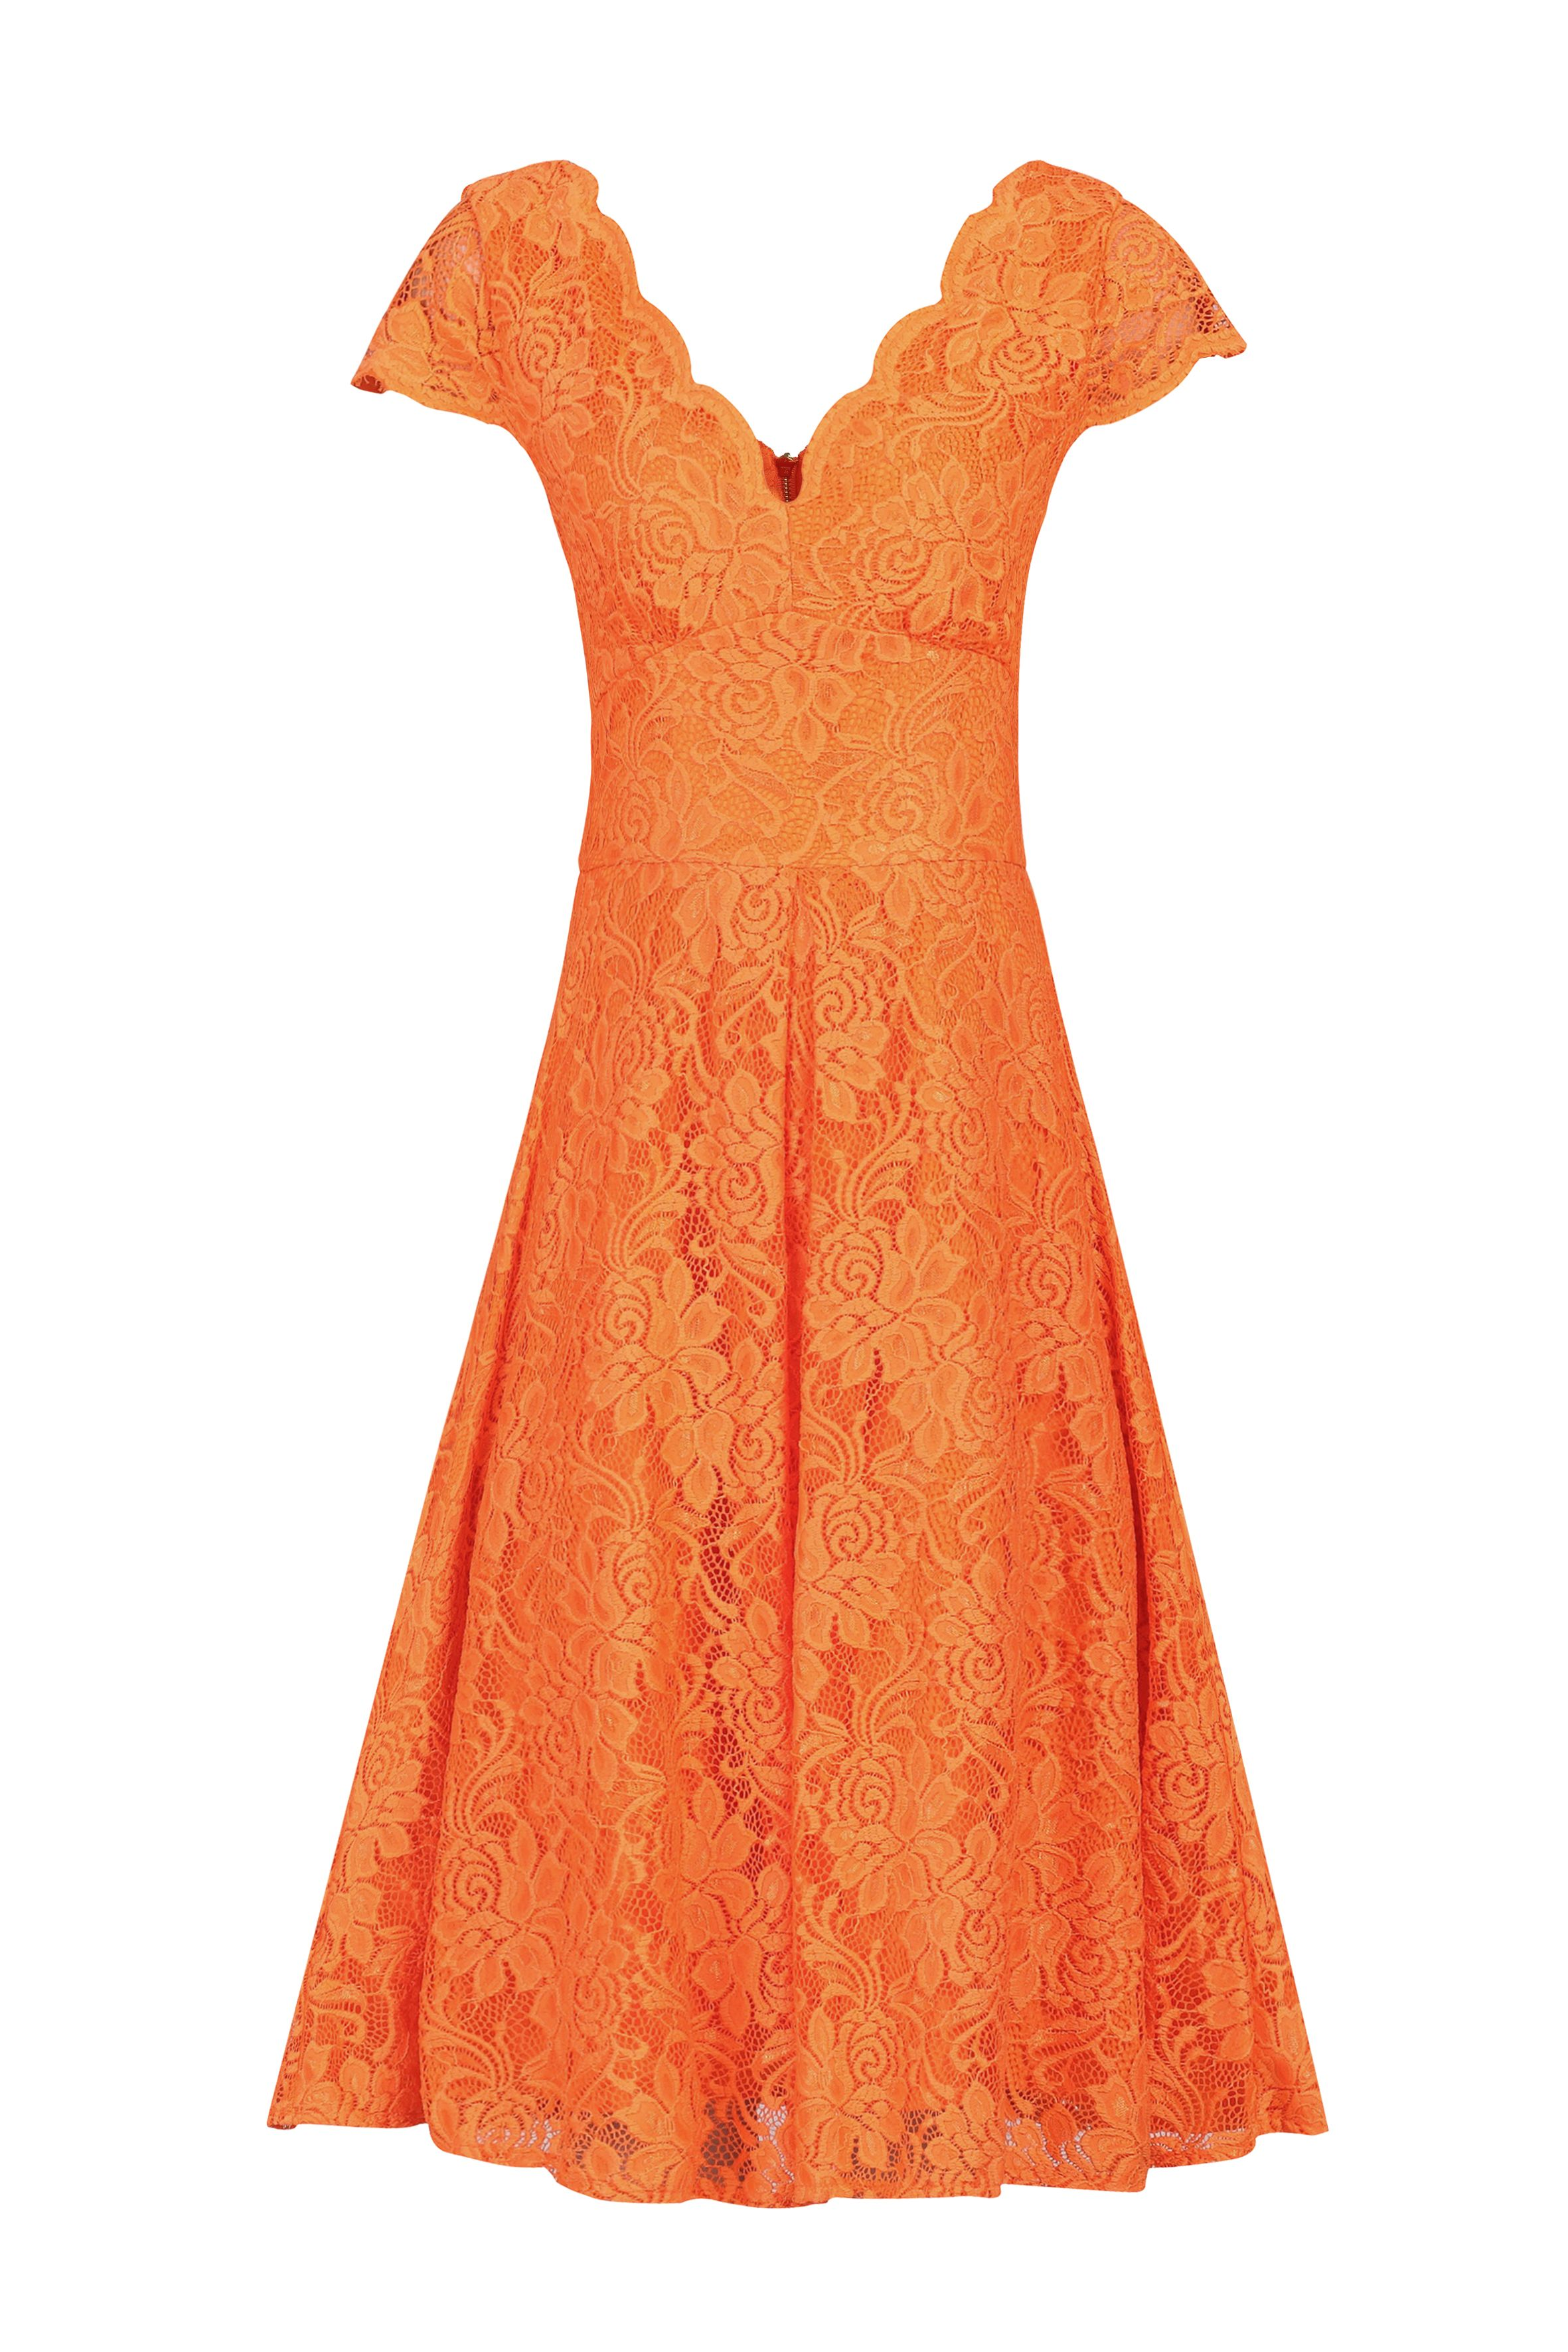 Jolie Moi Cap Sleeve Scalloped Dress, Orange